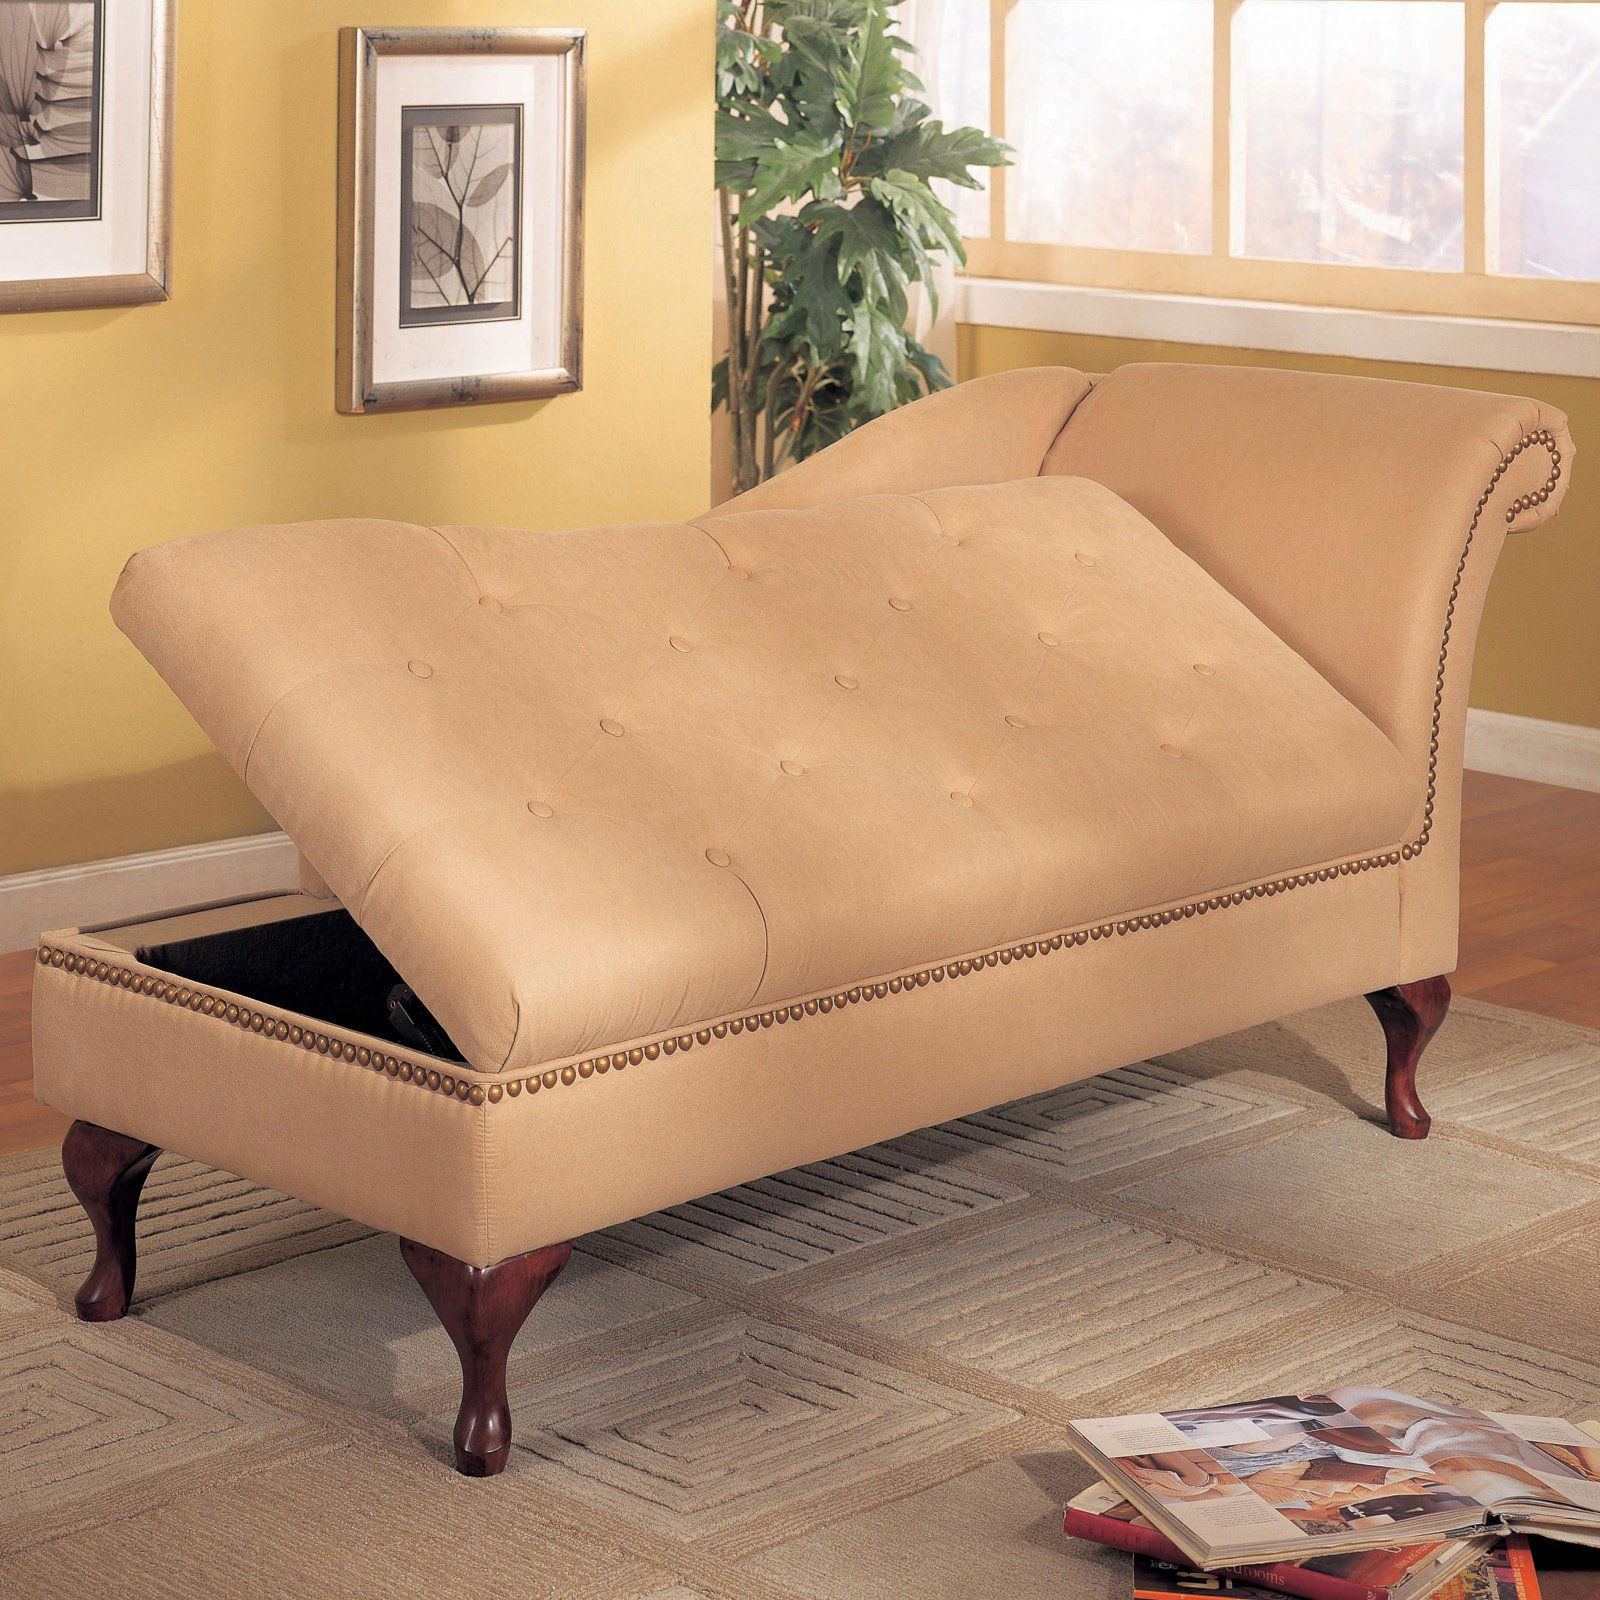 Best Indoor Chaise › Indoor Chaise Lounge With Storage Chaise 400 x 300